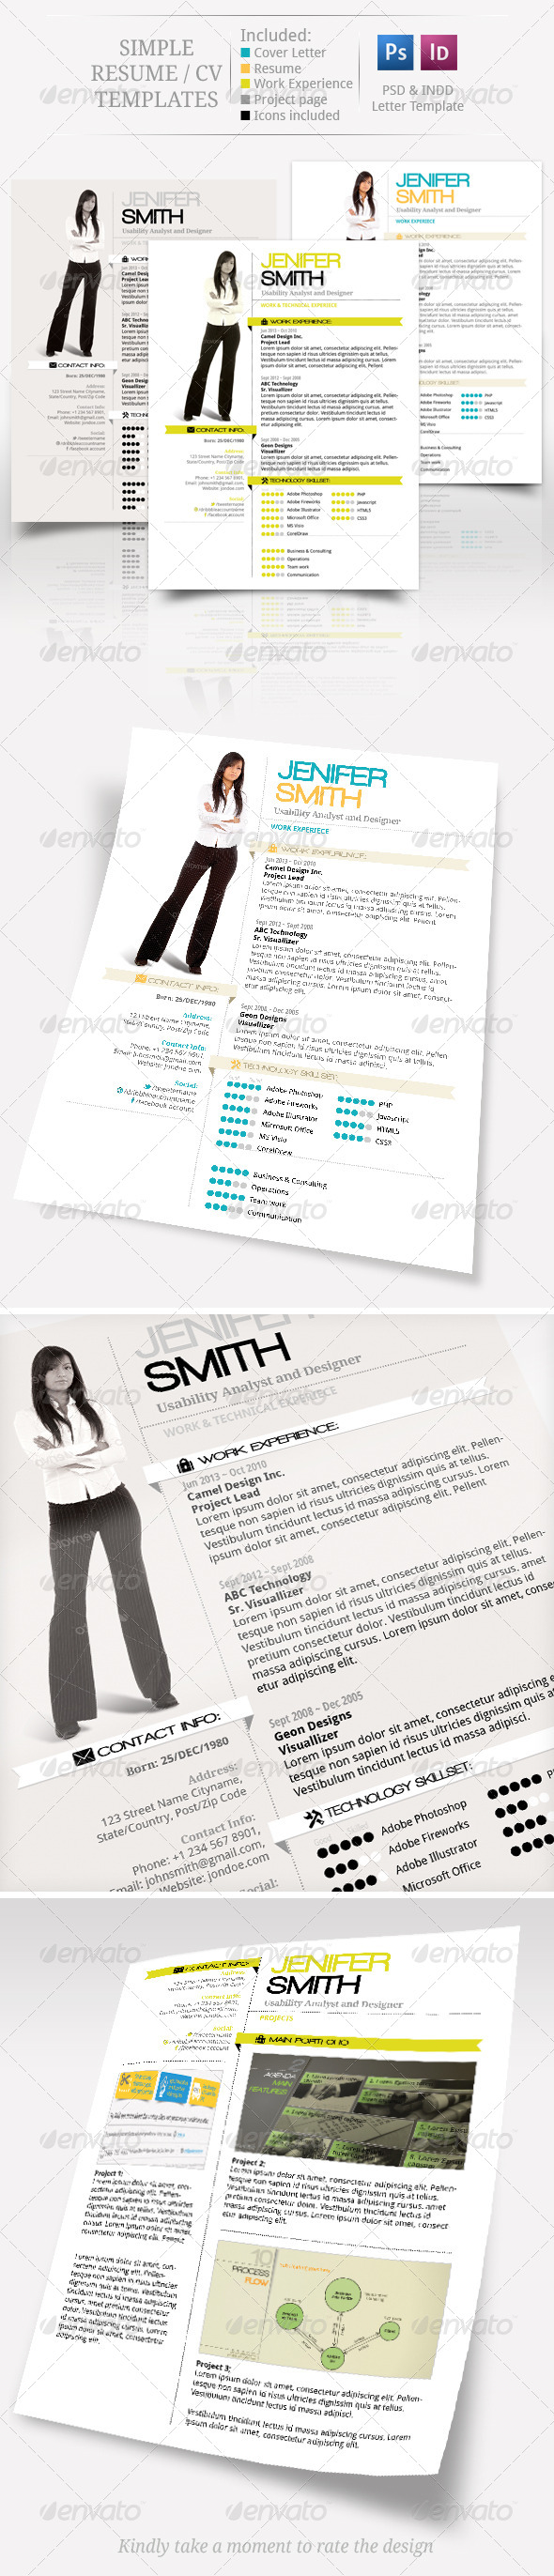 GraphicRiver Simple CV Resume Set 6293995